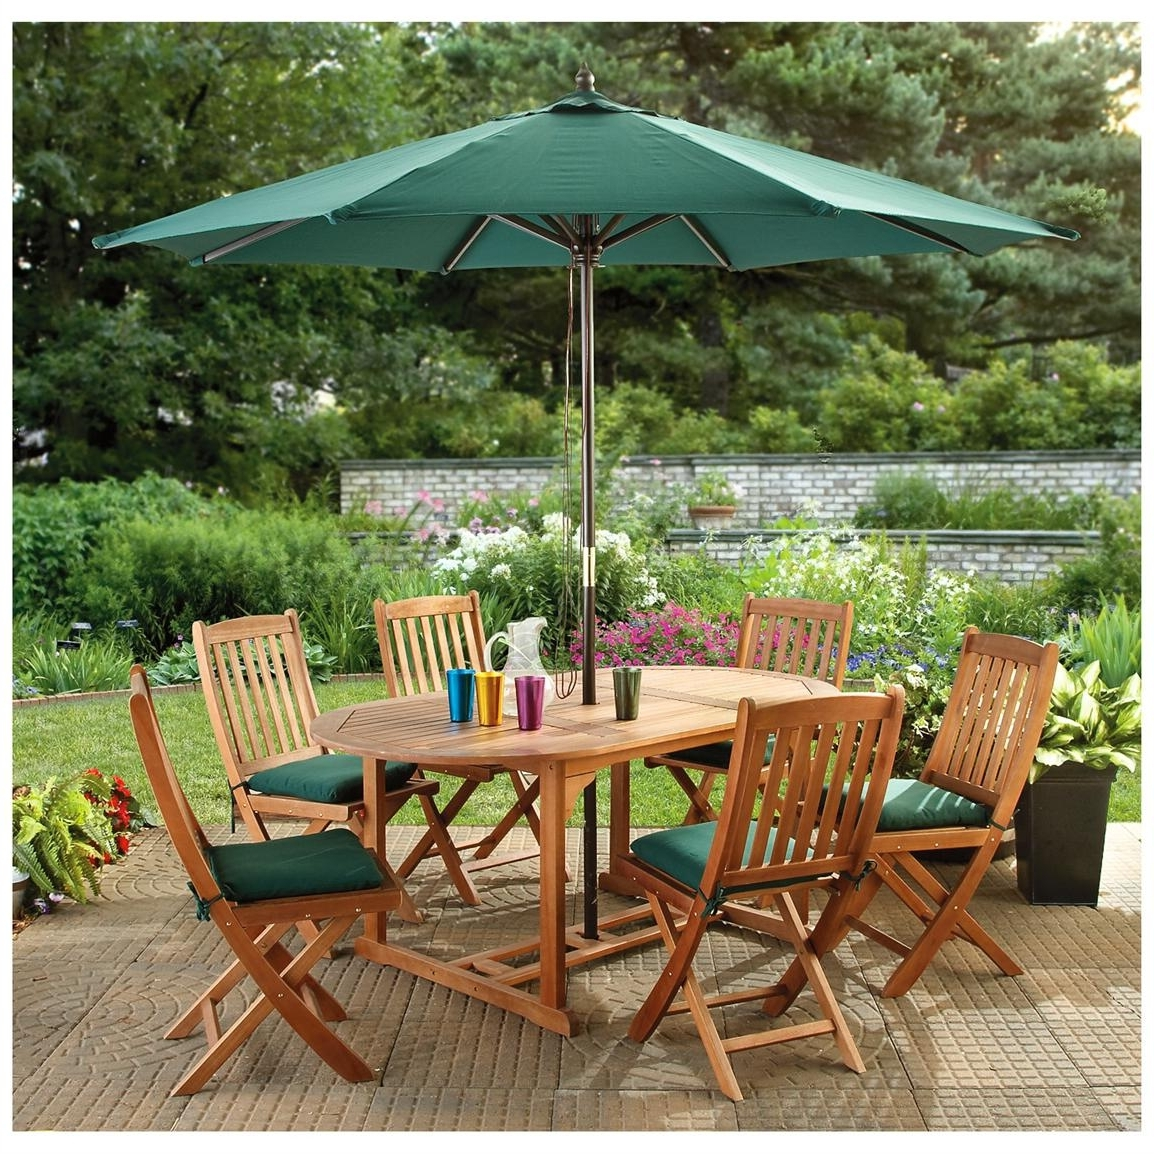 Most Recent Patio Table Sets With Umbrellas Inside Patio Ideas Outdoor Umbrellas Clearance Bar Height Tables Lowe's (View 15 of 20)